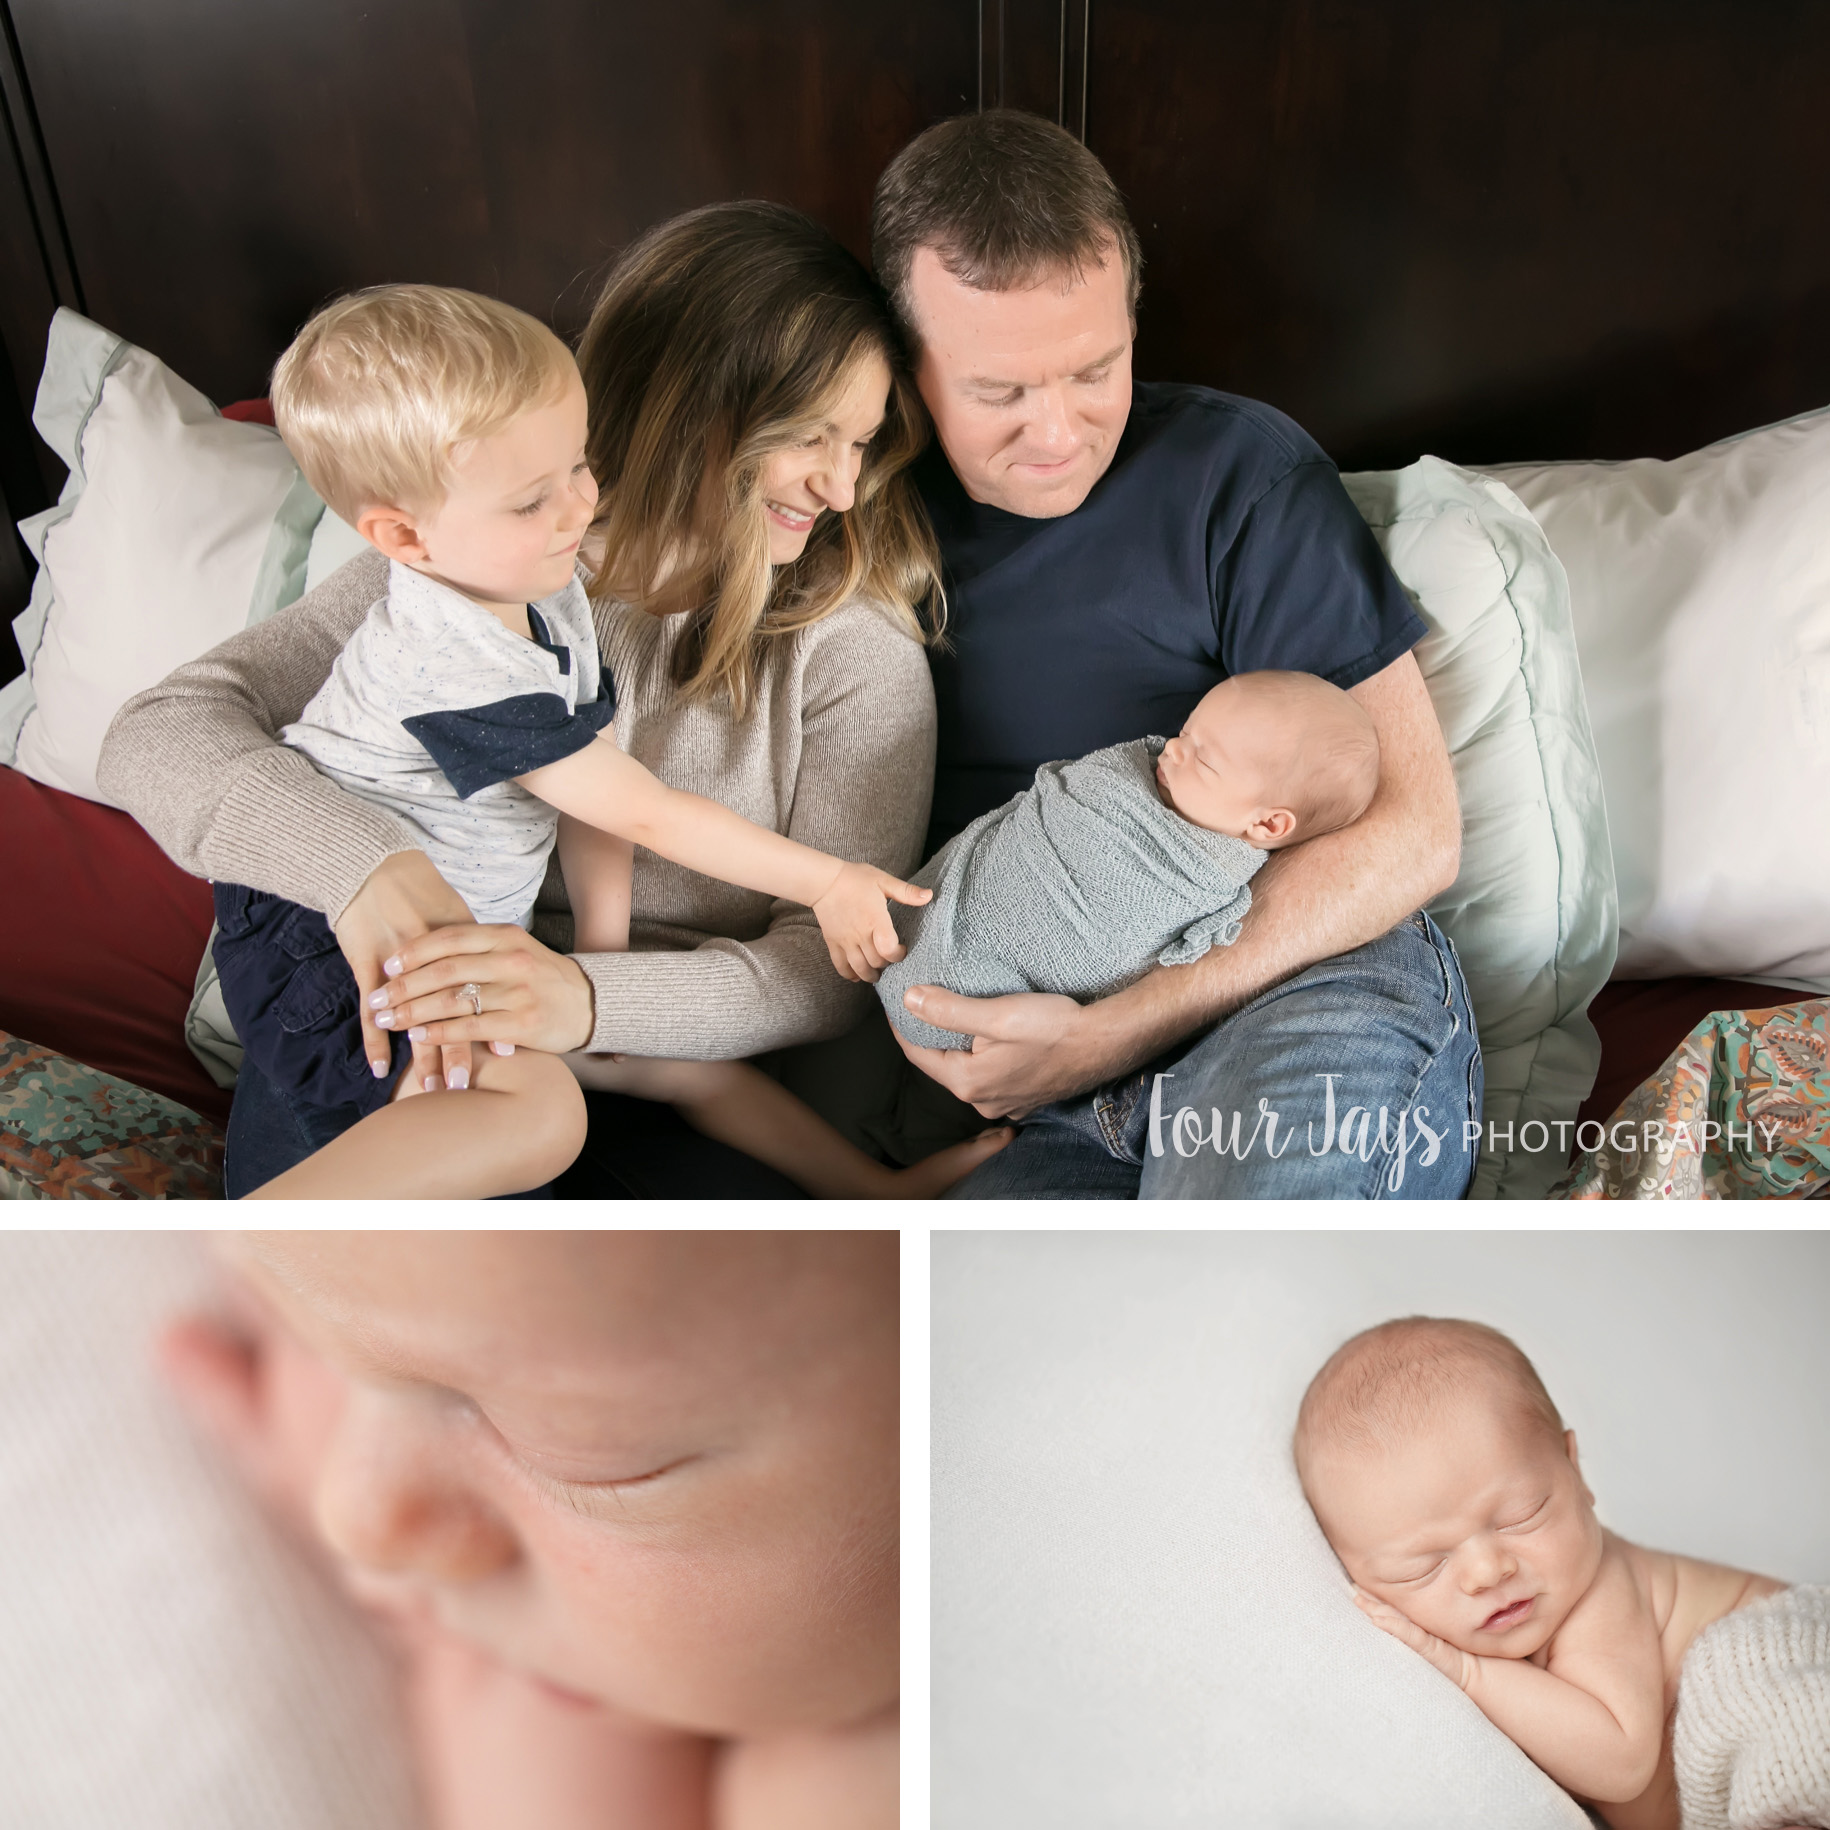 Best newborn in home family lifestyle photographers oregon city wm.jpg